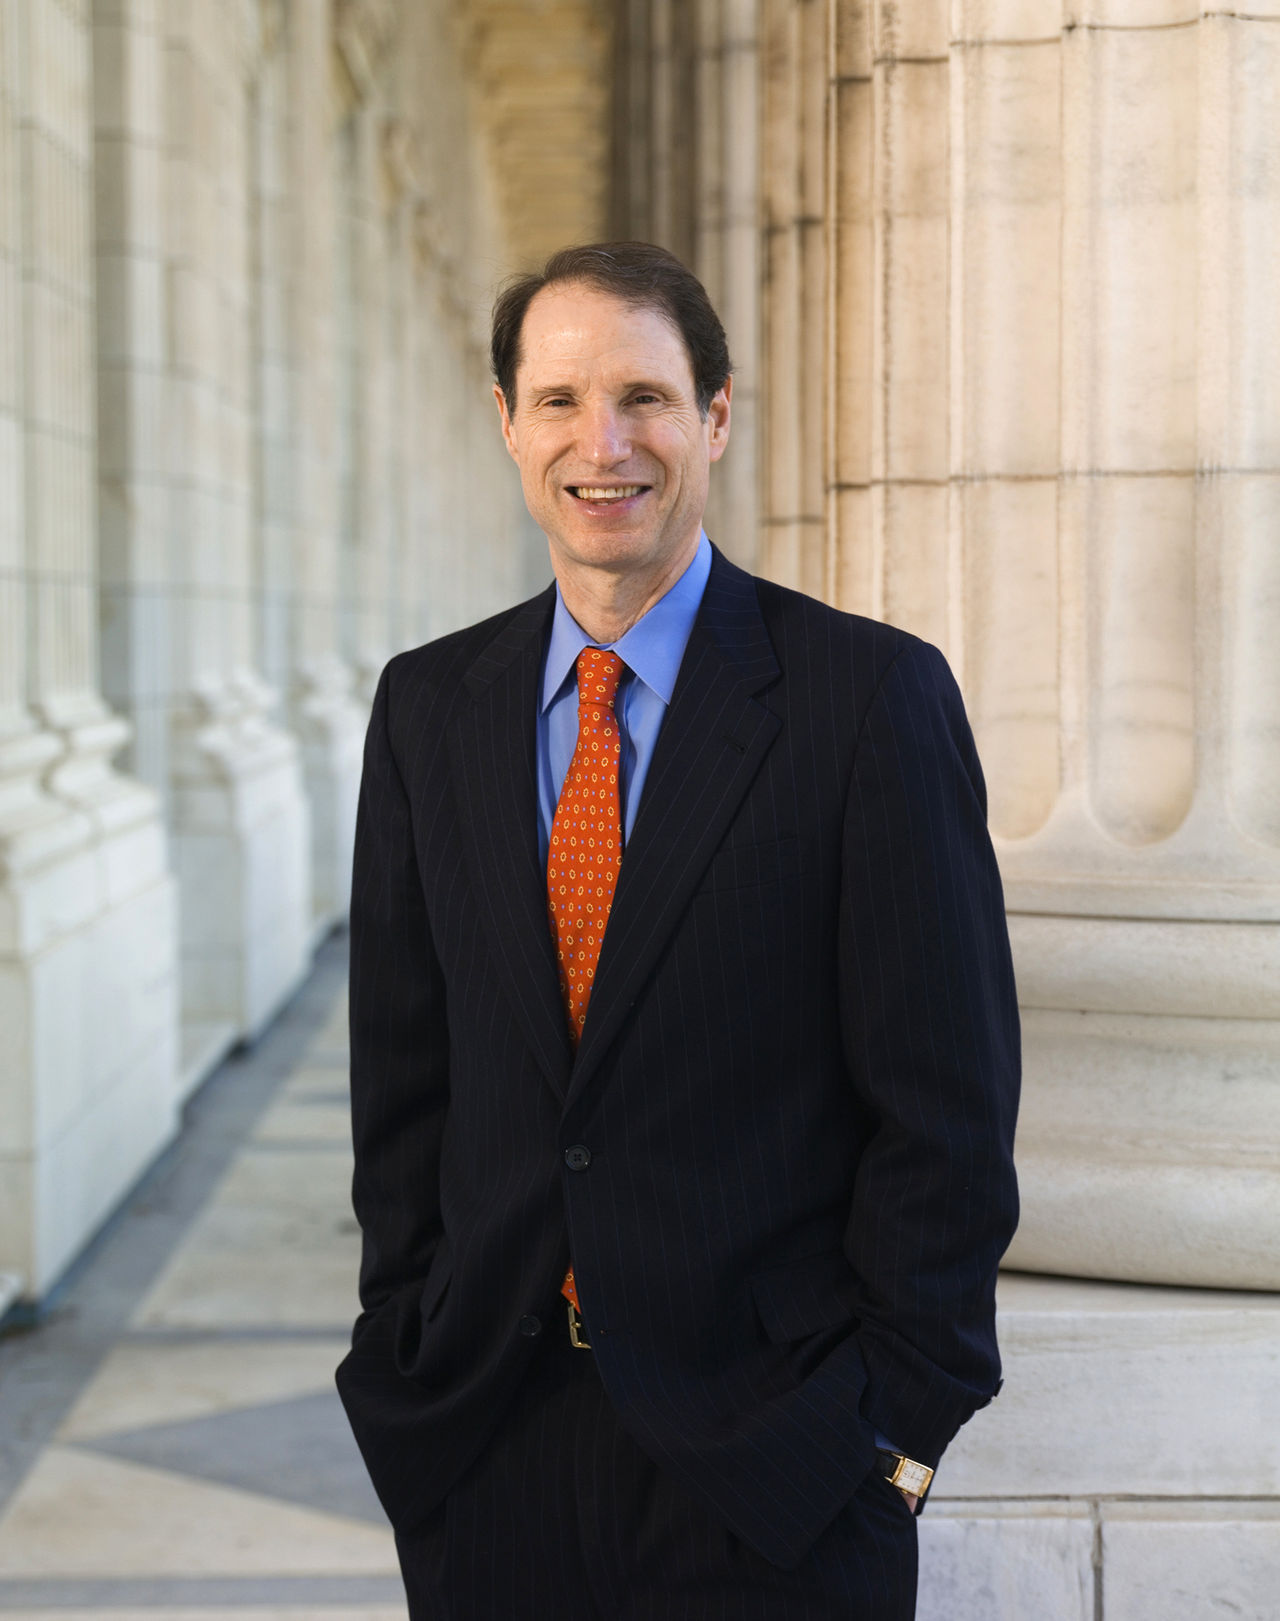 The Honorable Ron Wyden (D-OR)